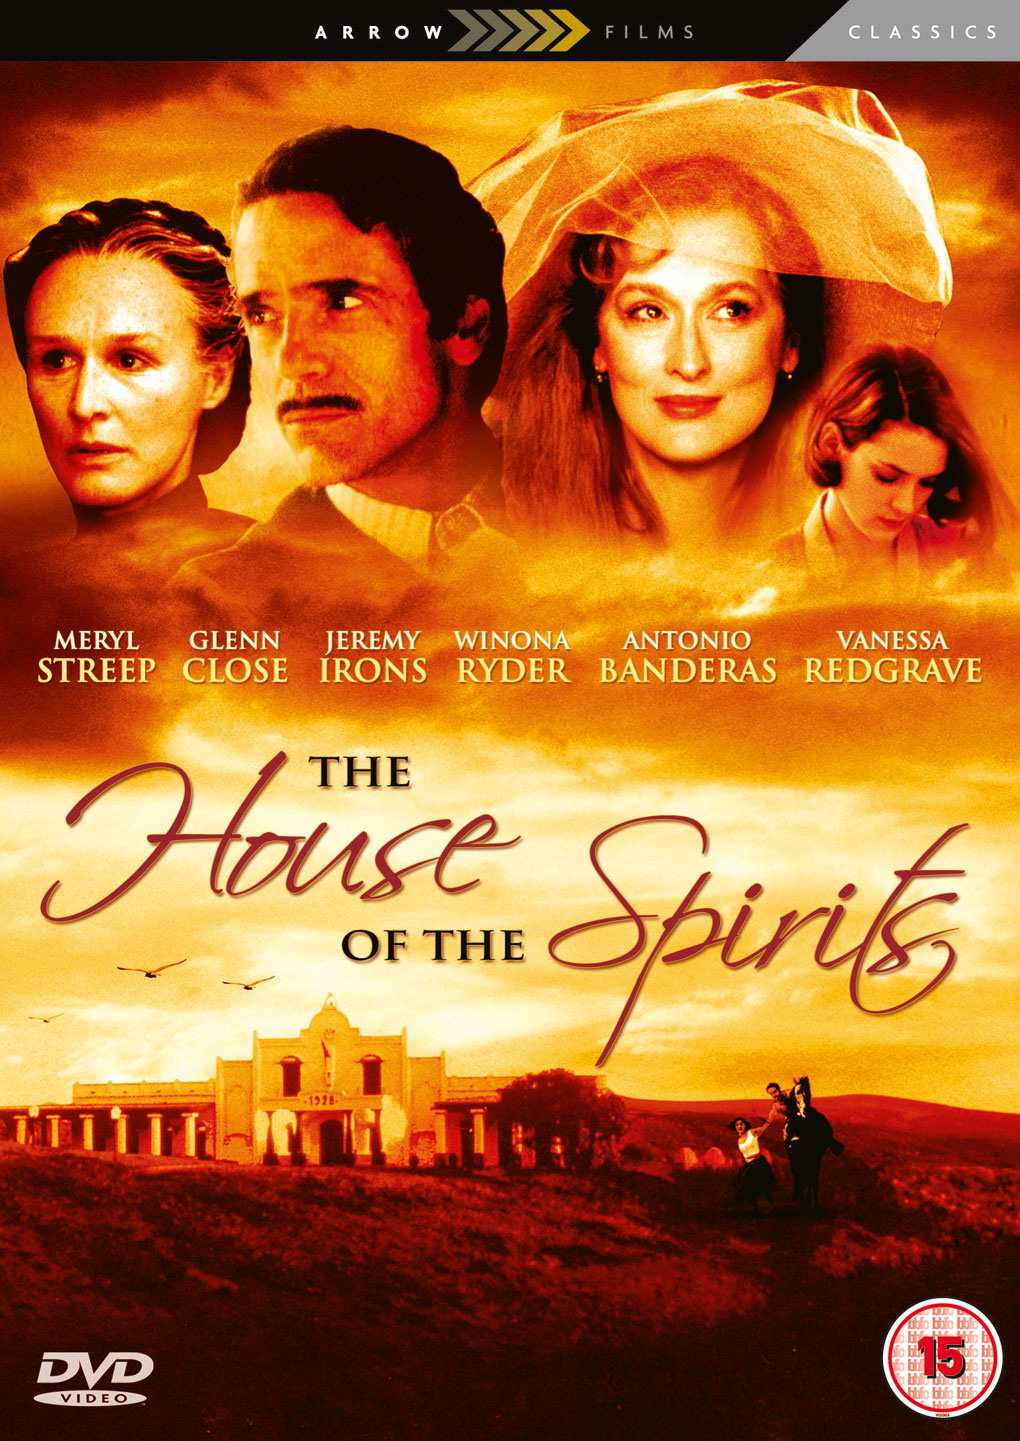 The House of the Spirits movie